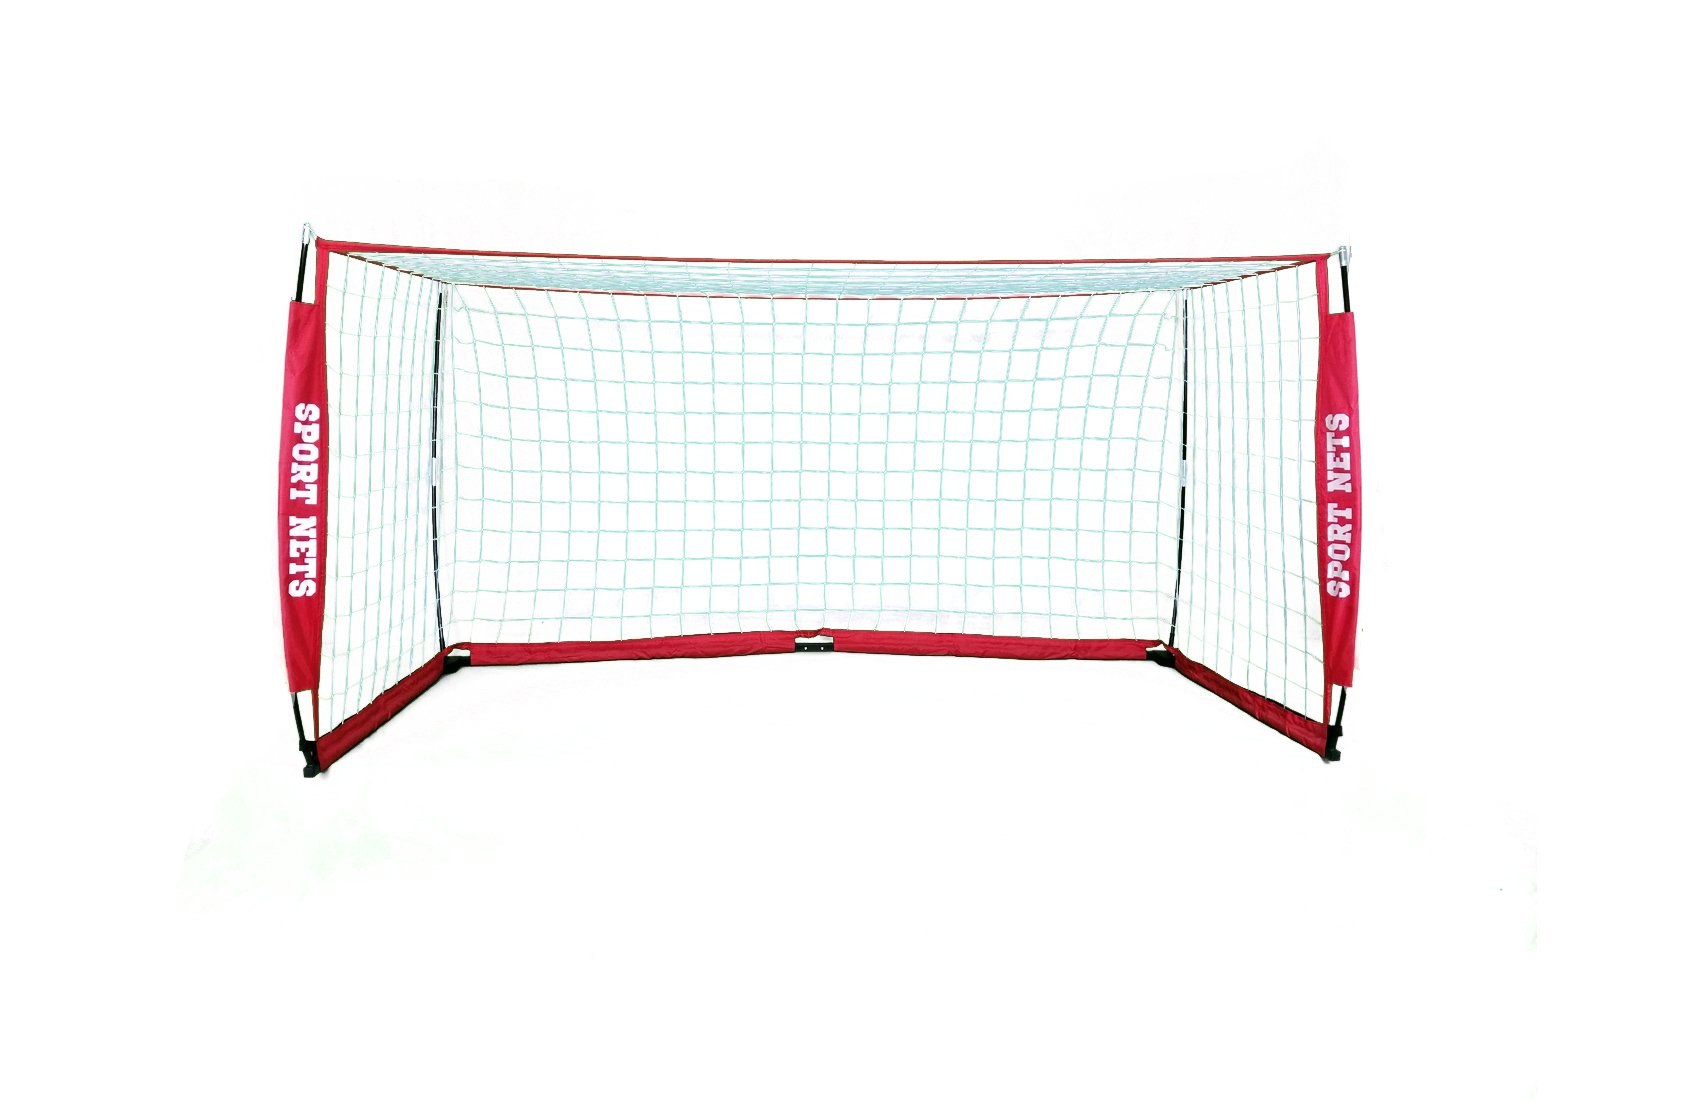 Sport Nets Portable Soccer Goal - Portable Bow Frame Soccer Net with Carry Bag - 8 x 4 by Sport Nets